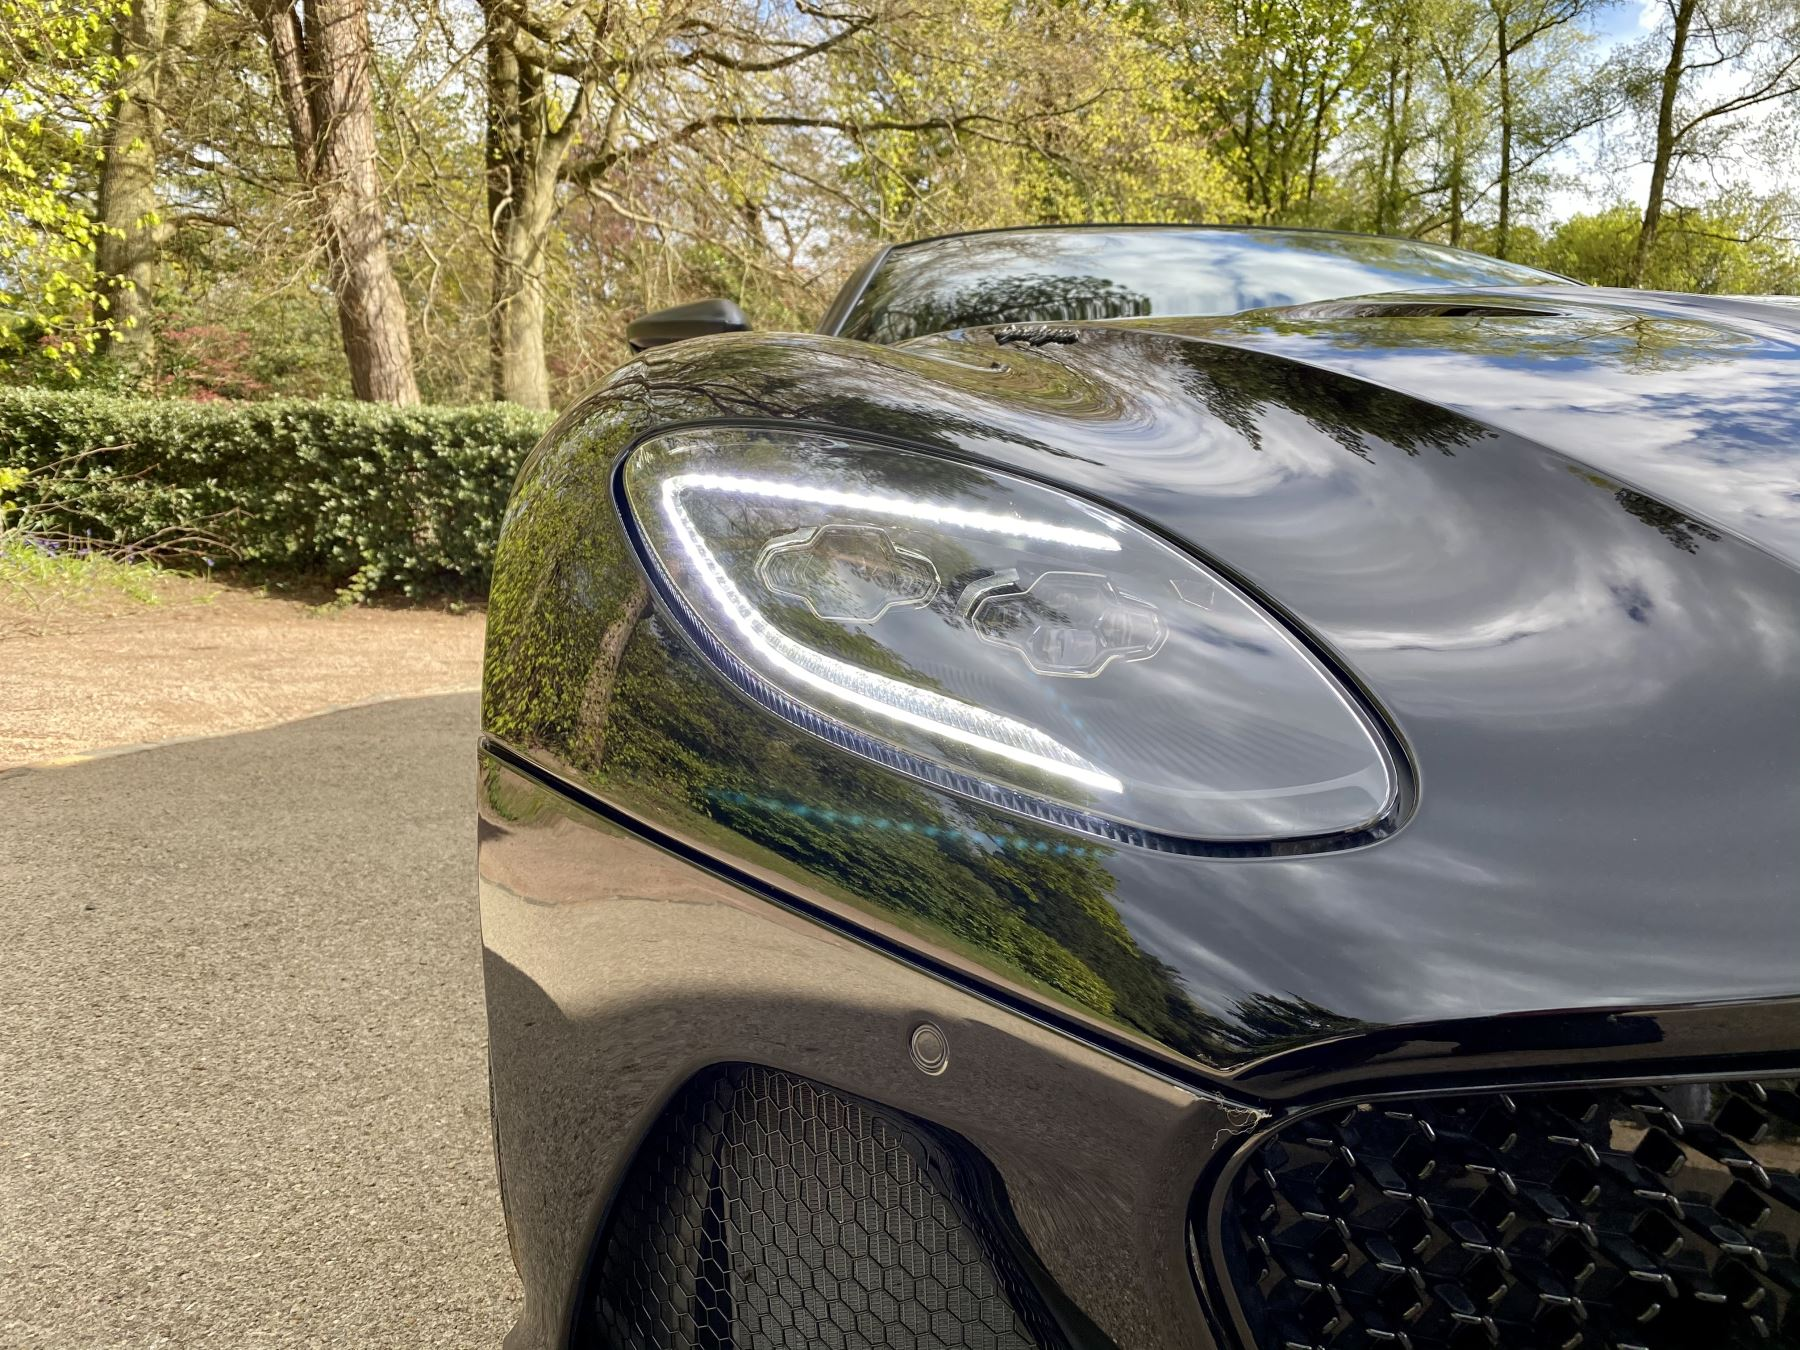 Aston Martin DBS V12 Superleggera 2dr Touchtronic Tag Edition  1 of 50 produced worldwide  image 35